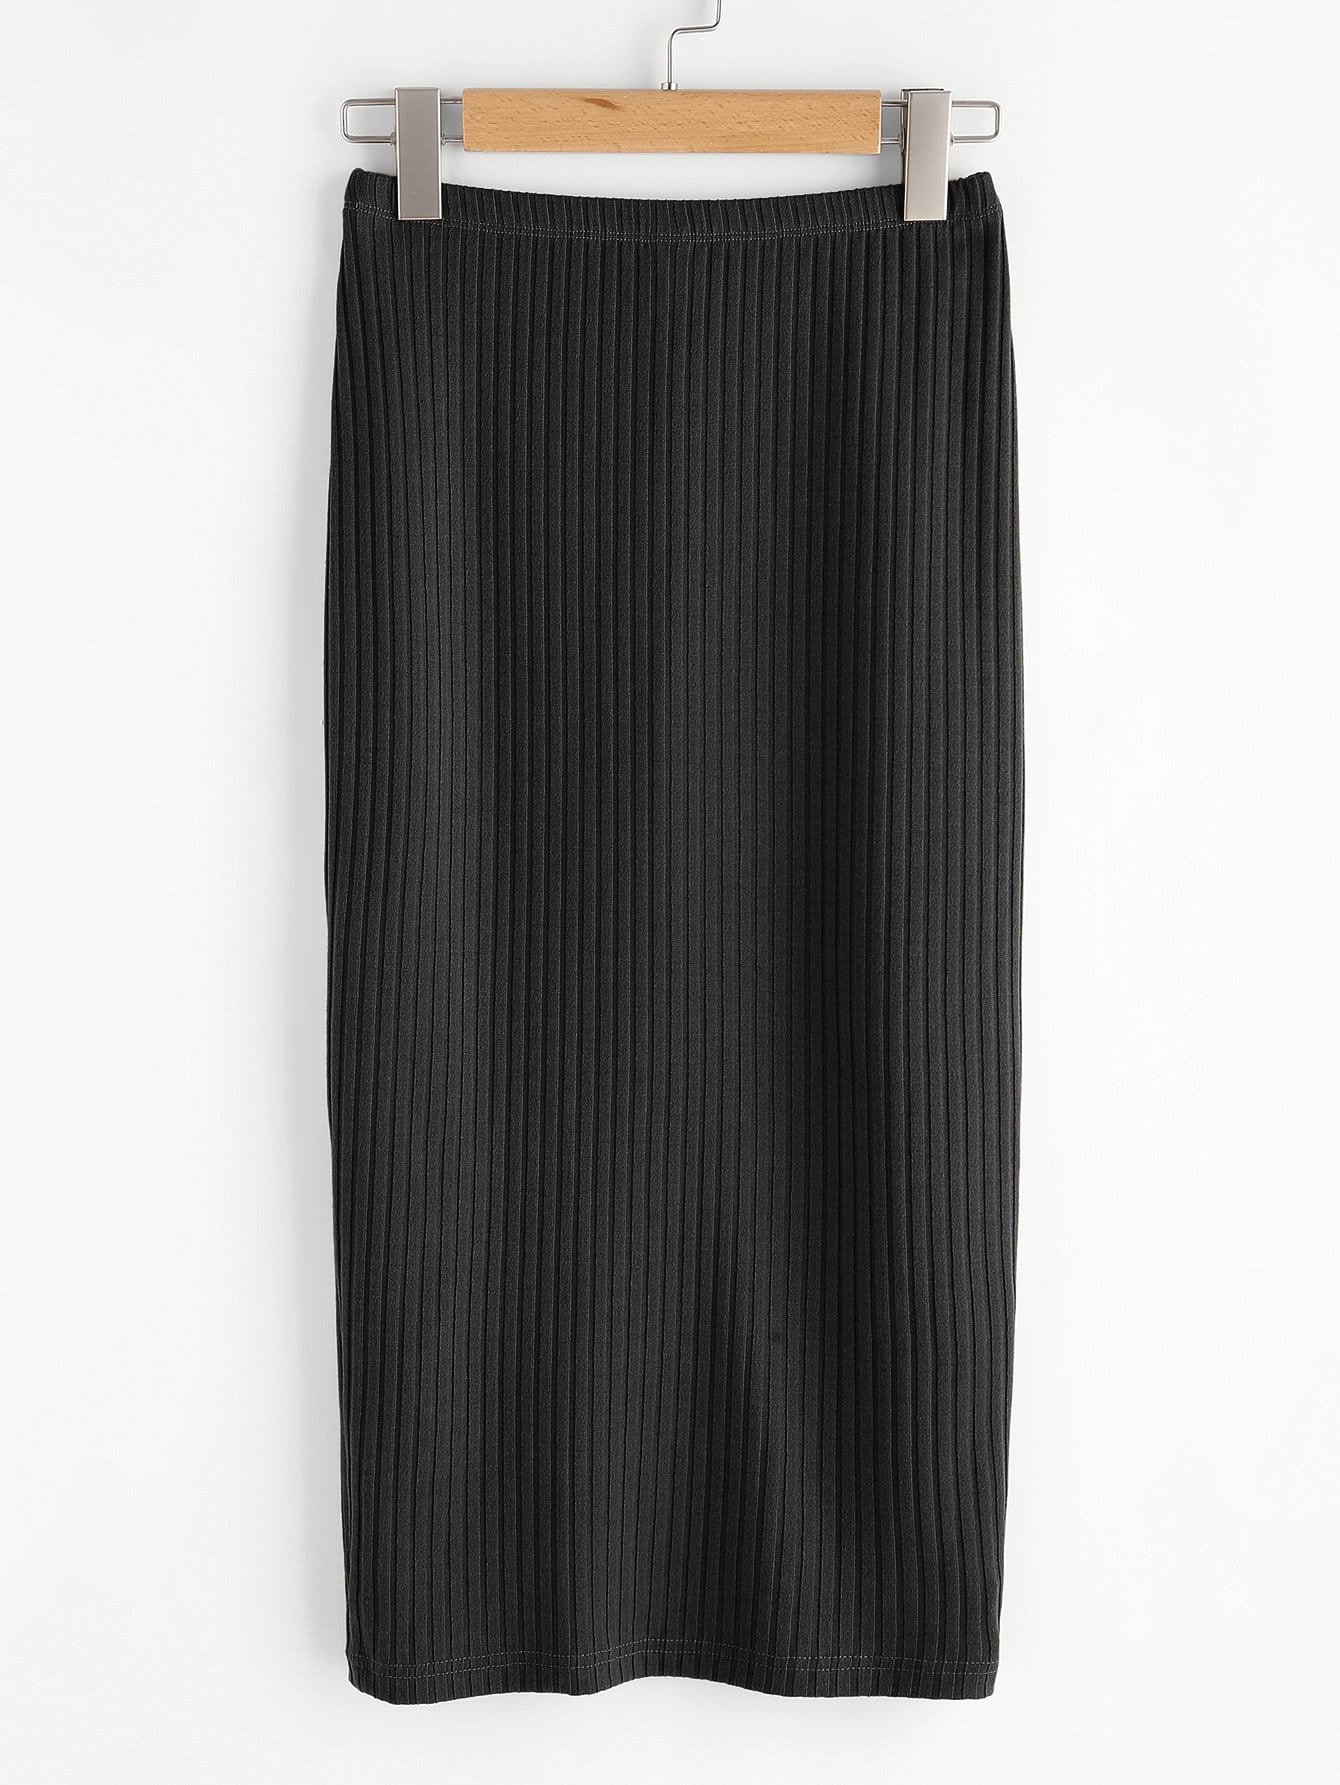 Vented Back Rib Knit Skirt